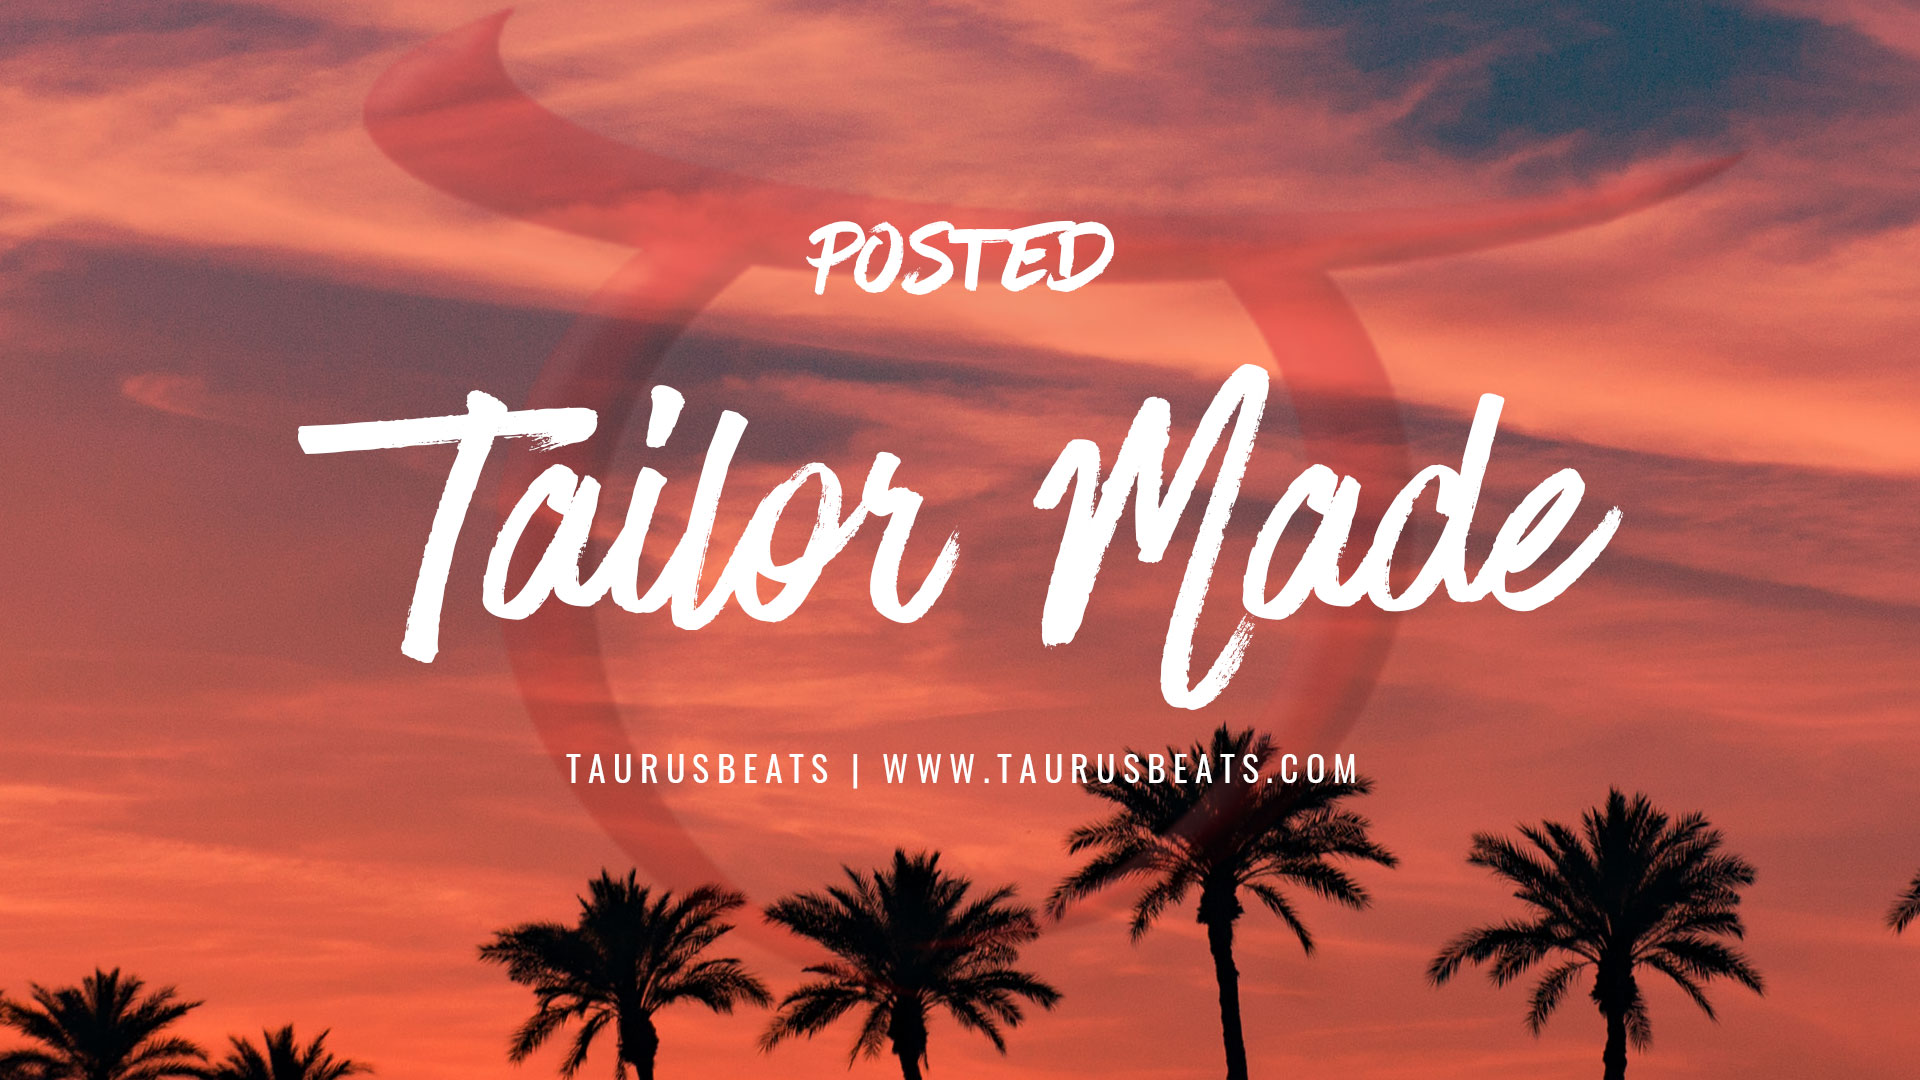 image for Tailor Made